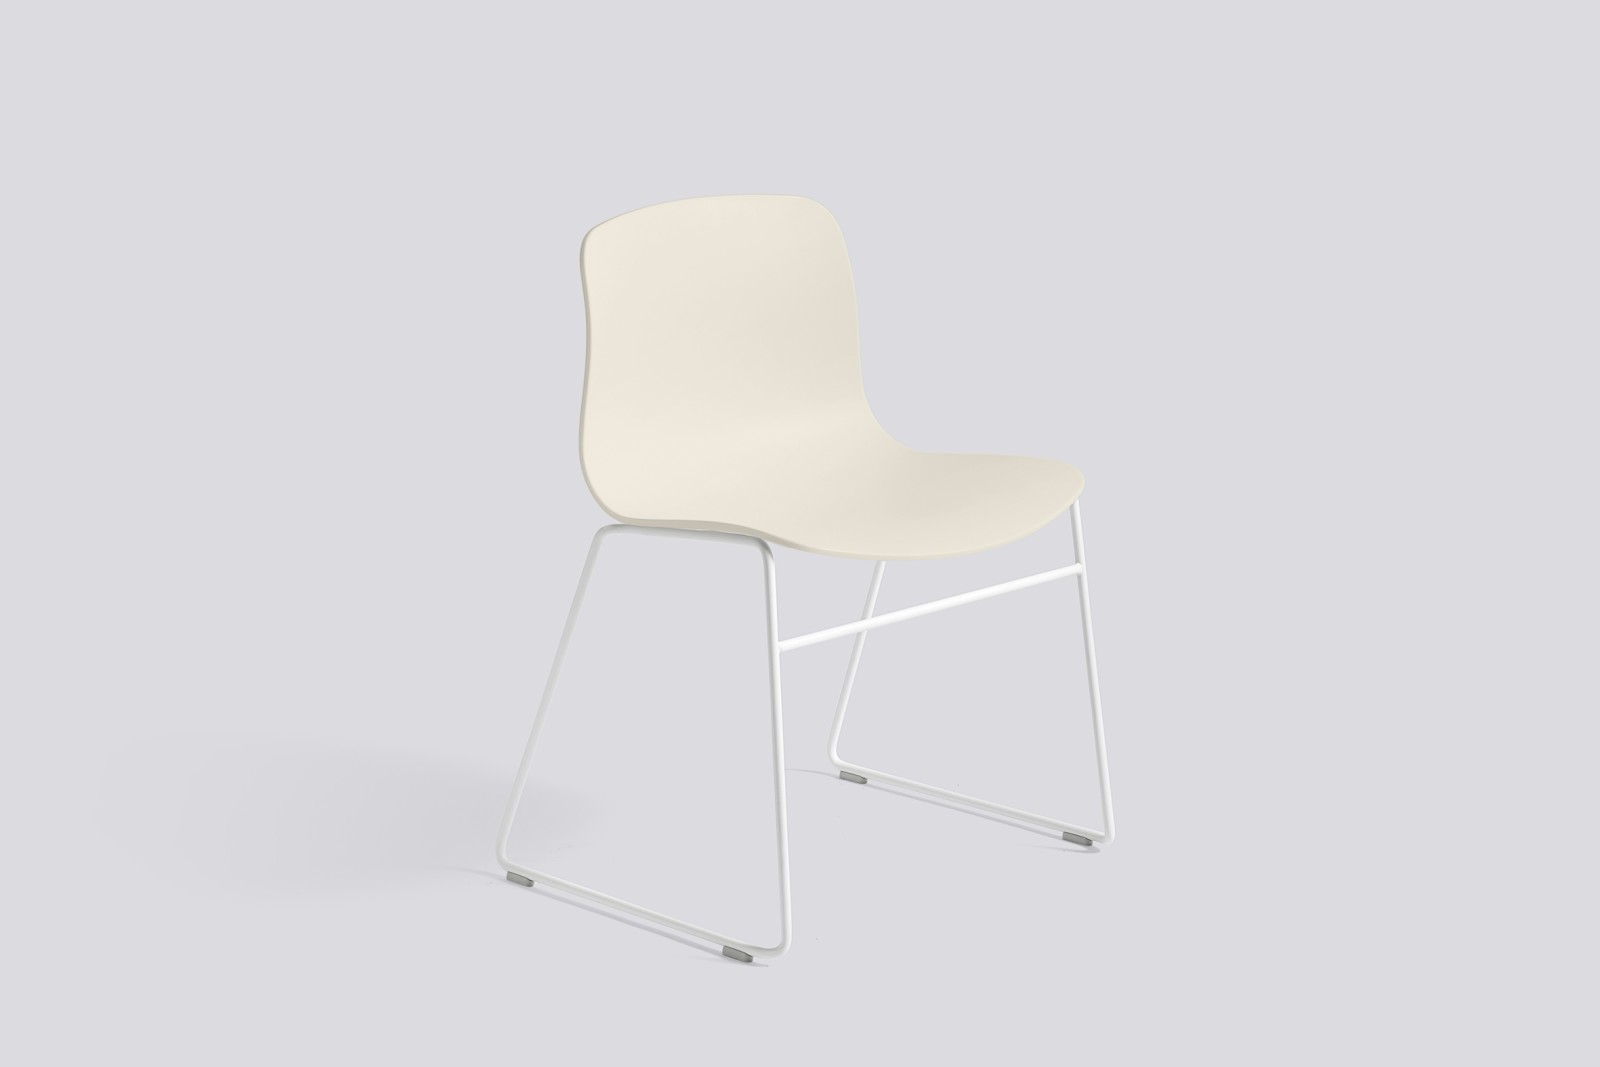 About A Chair AAC08 Cream White Seat and White Base